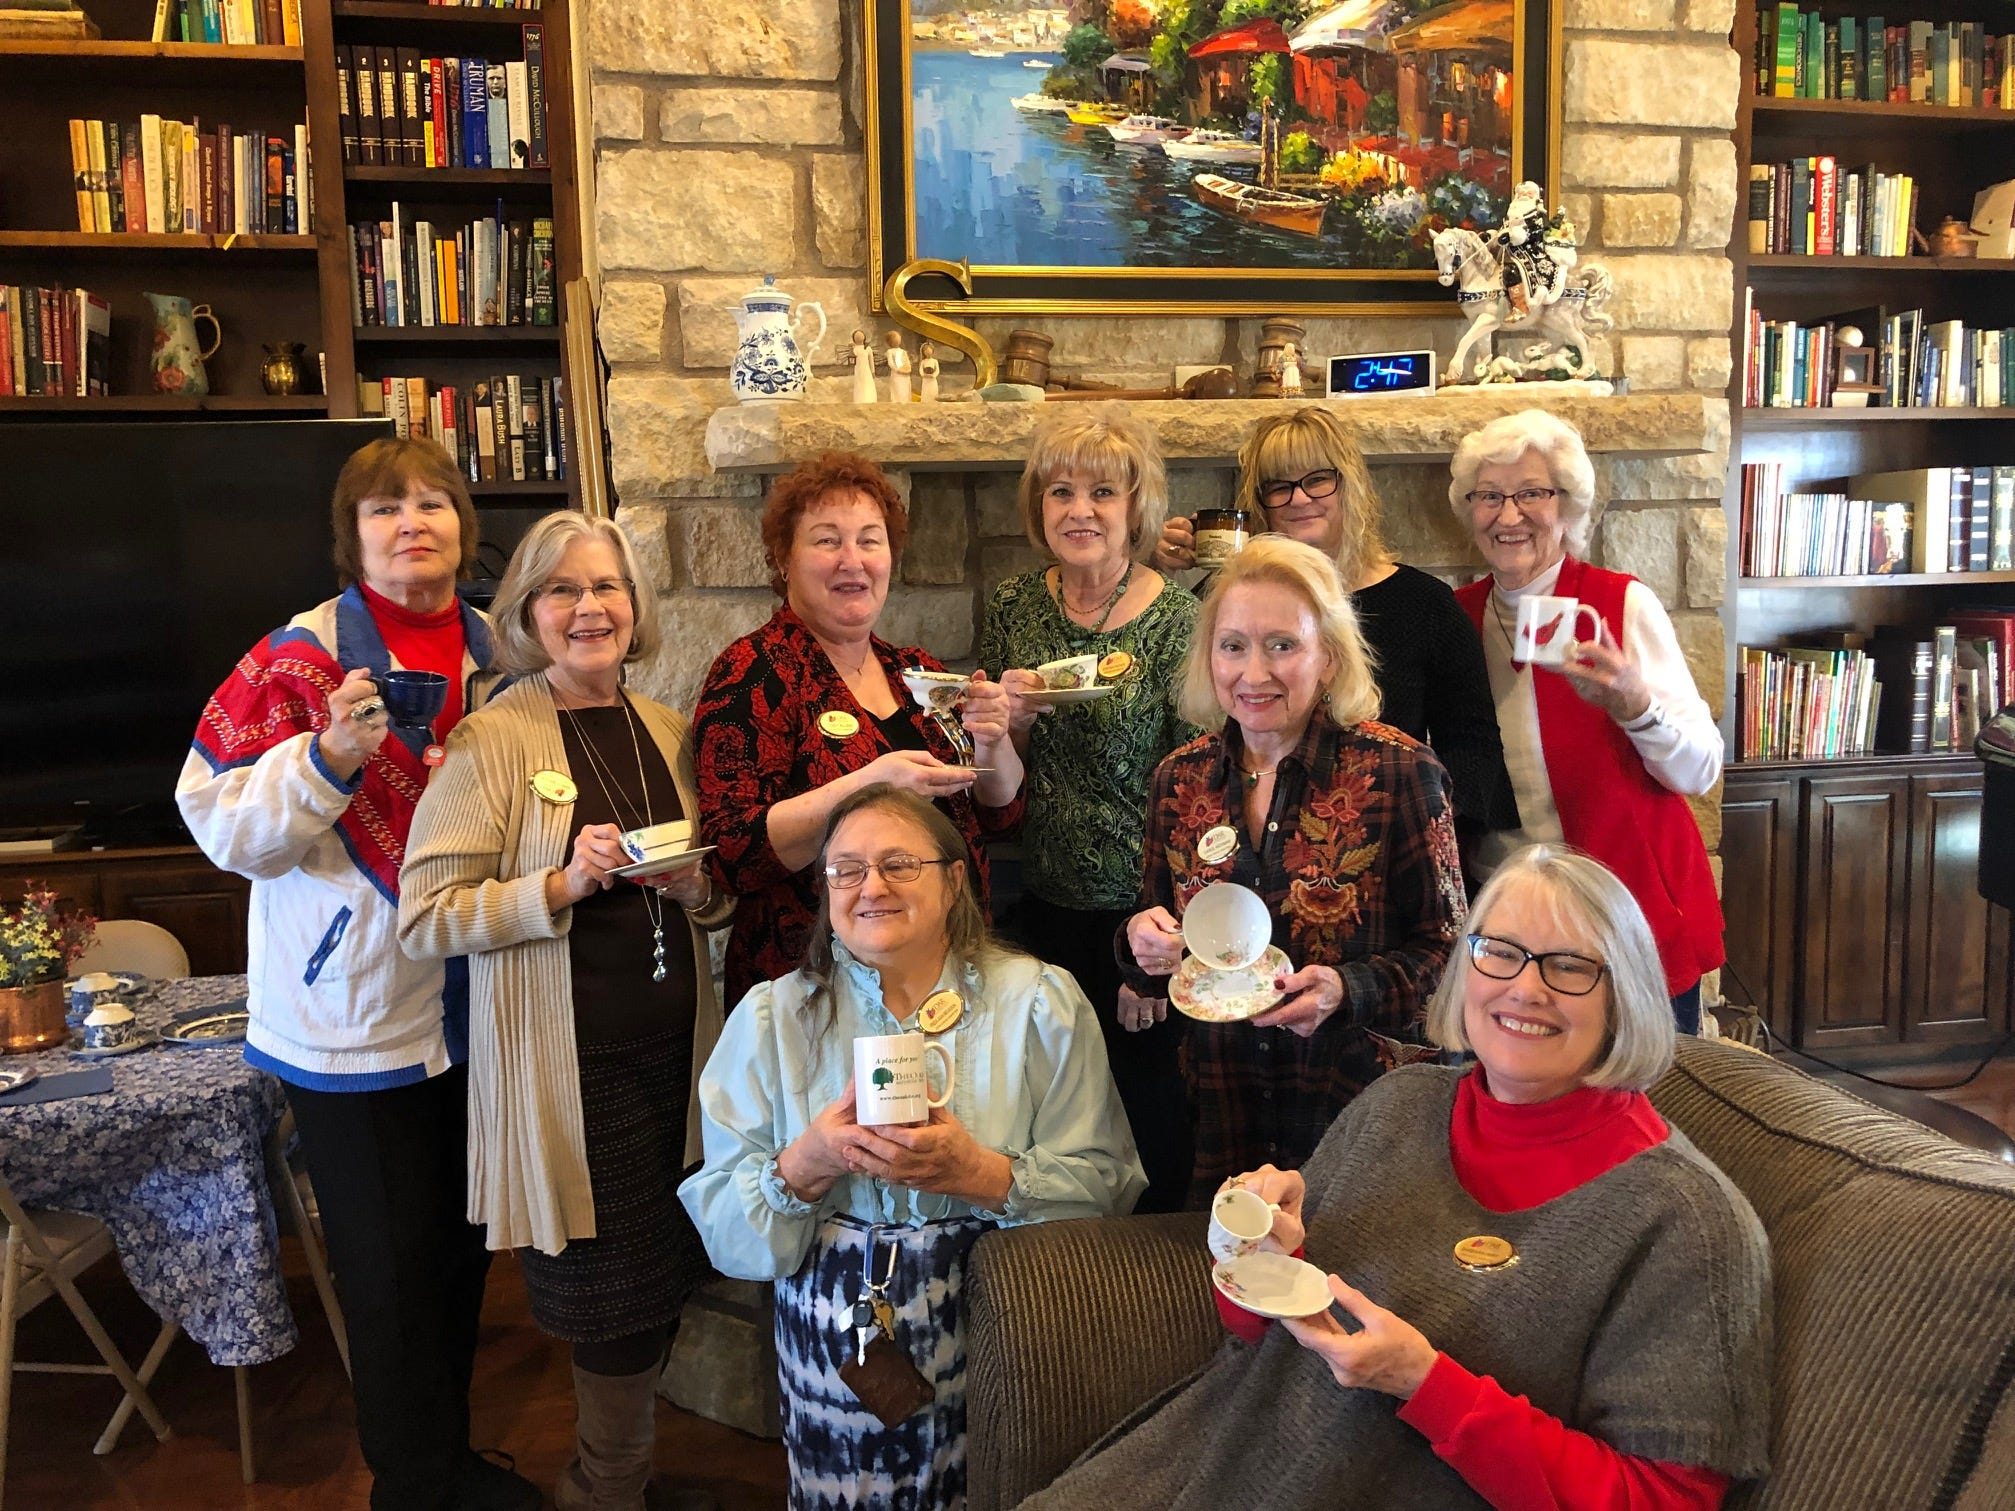 Members of the John Davis Chapter of the Daughters of the American Revolution discussed their historic tea cups at their annual Presidents Day Tea. Standing, from left: Nancy Masters, Nancy Brock, Cody Allen, Cindy Fisher, Amy Allen and Mary Stanley. Kneeling: Freda Meggison and Carol Hickman. Seated: Barbara Hart.